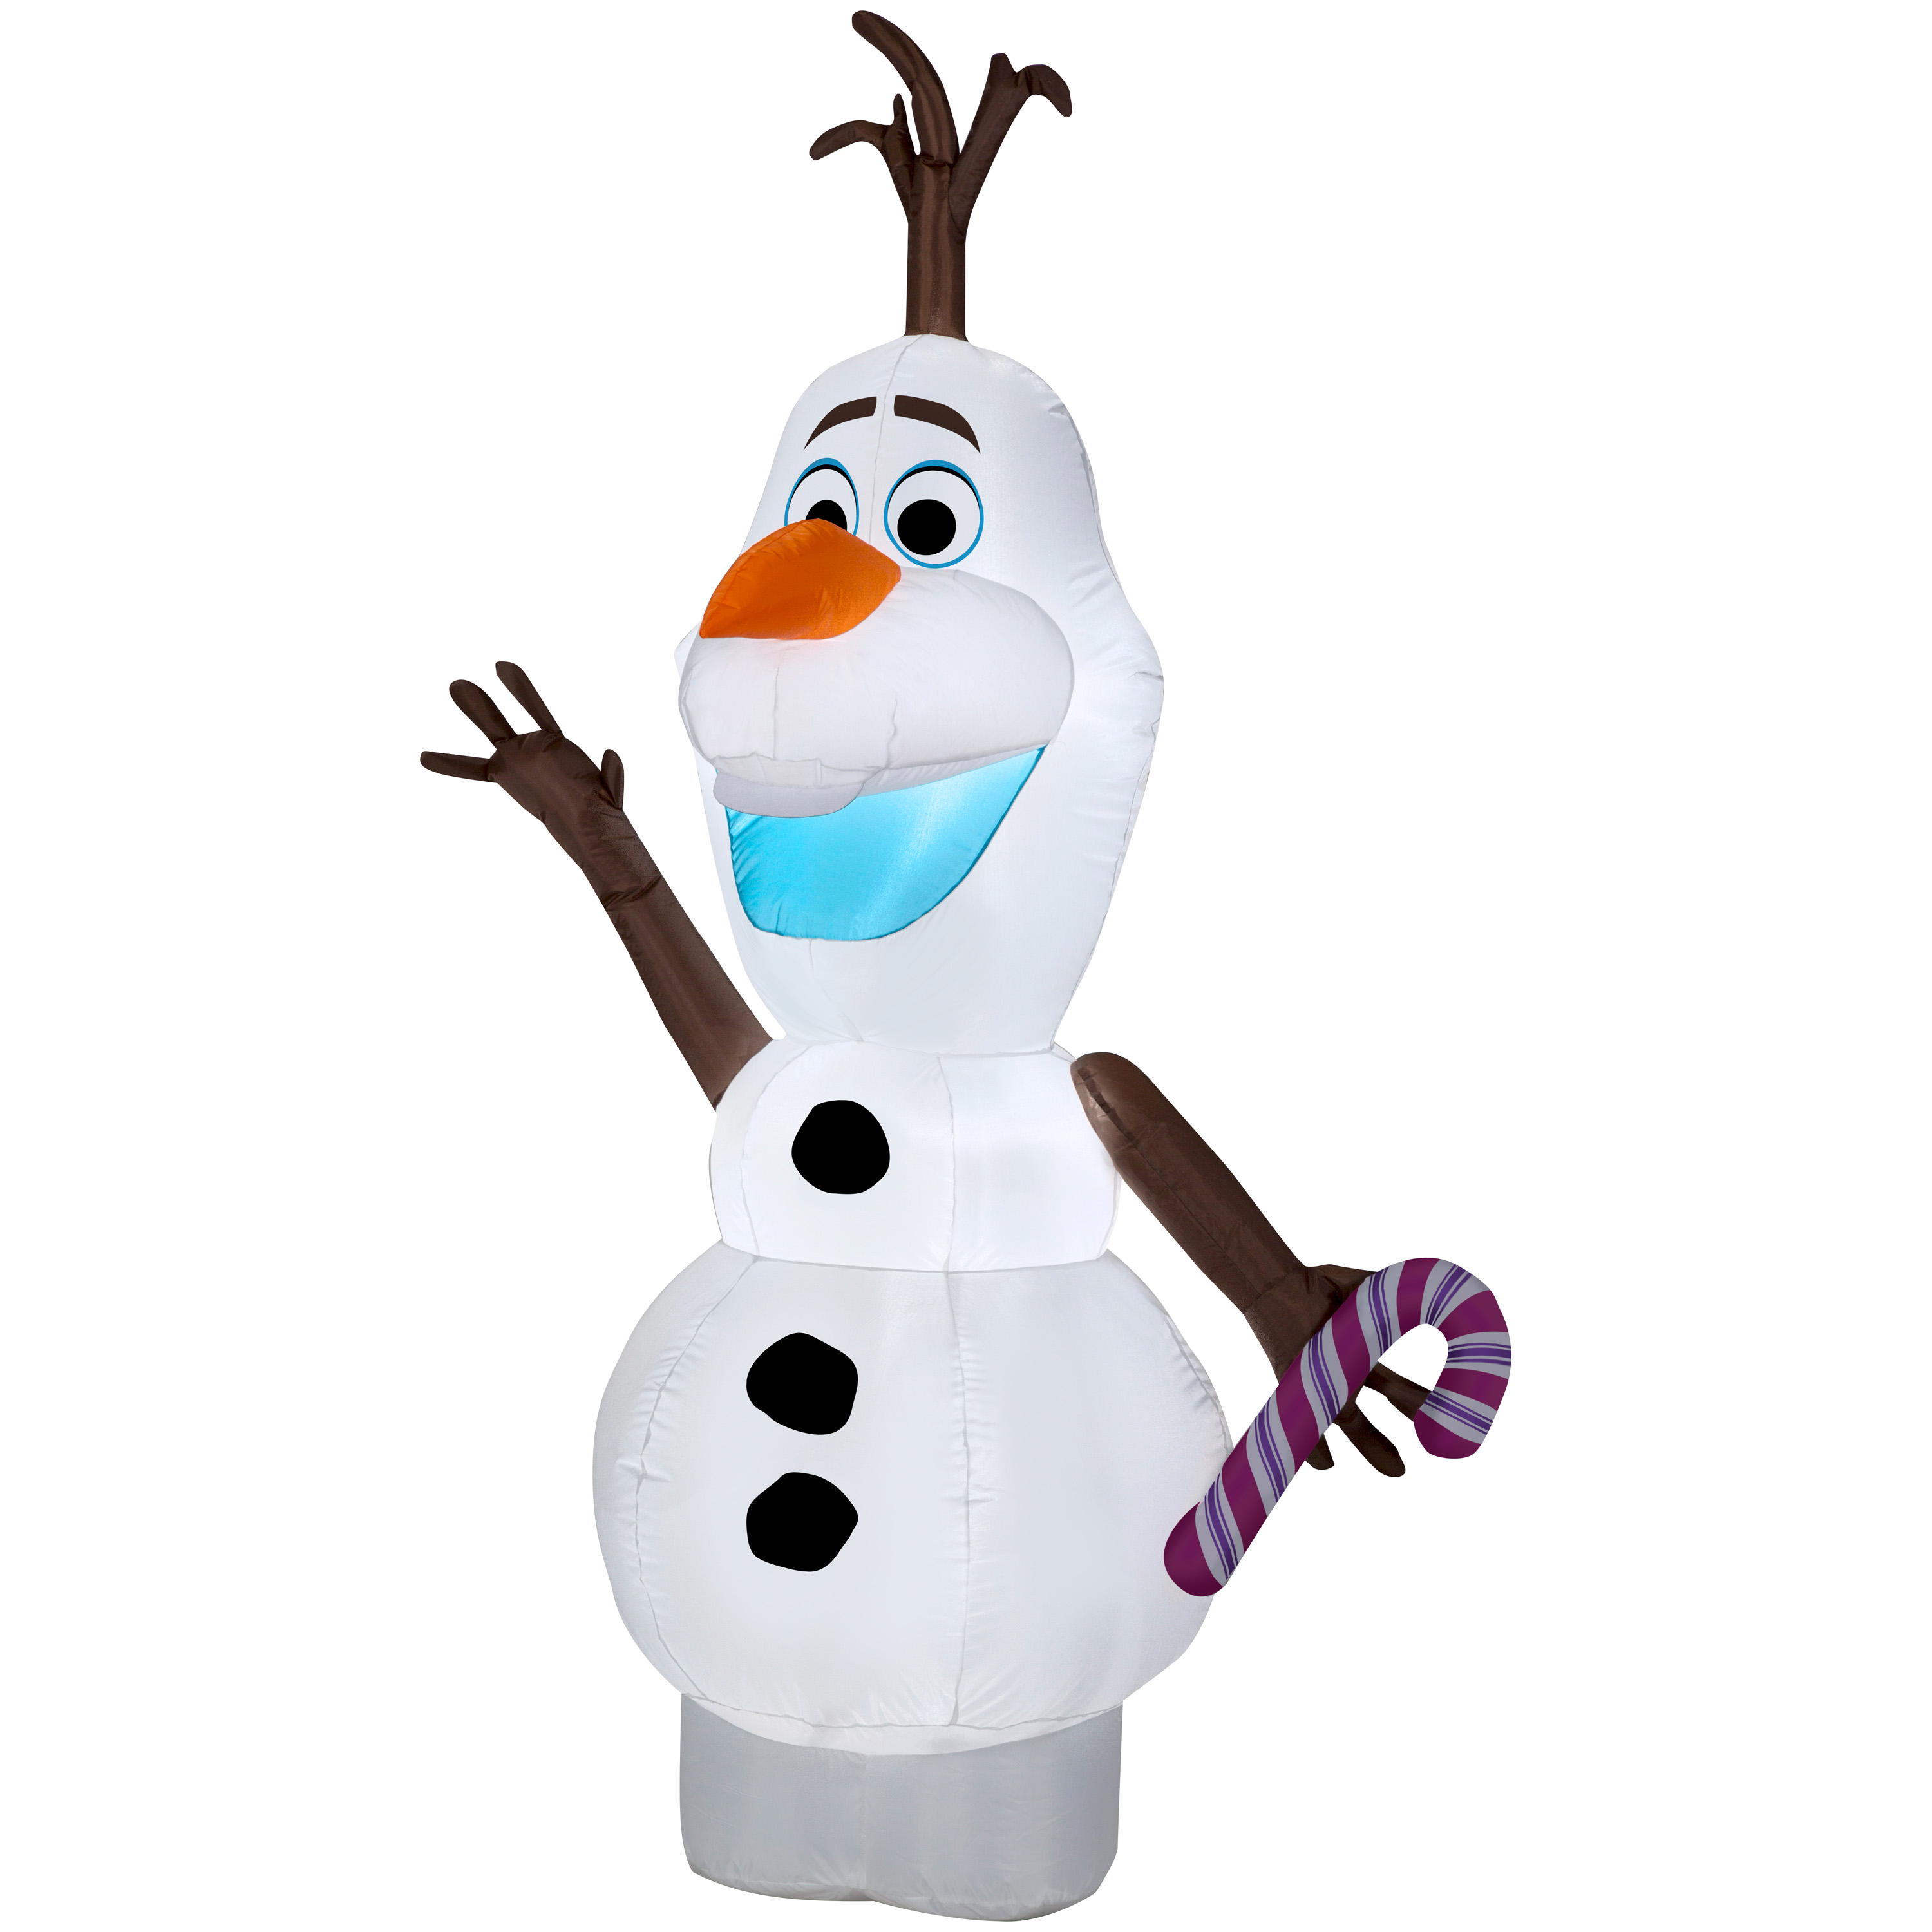 Image of Airblown Christmas Inflatable Olaf w/ Candy Cane 5.5' Tall